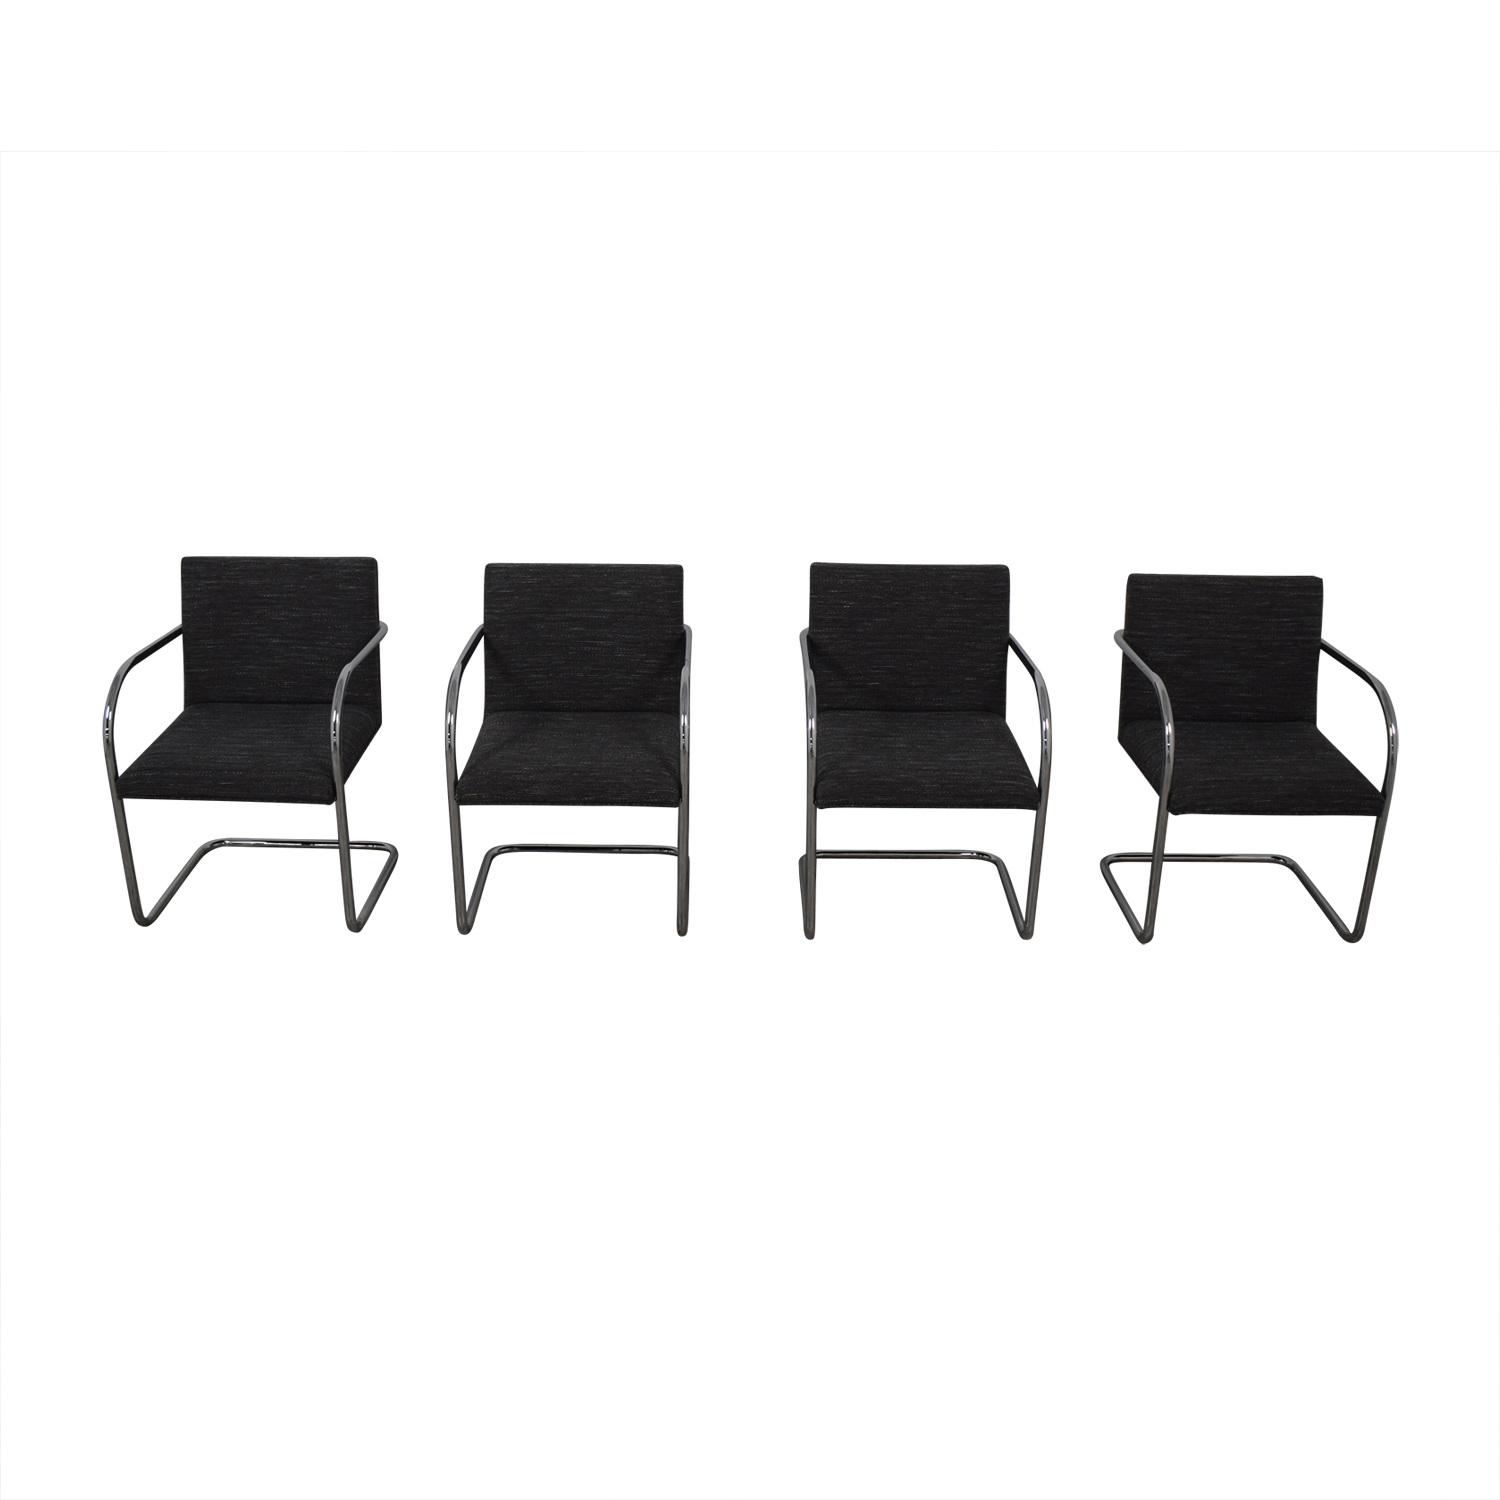 Chrome Upholstered Office Chairs dimensions